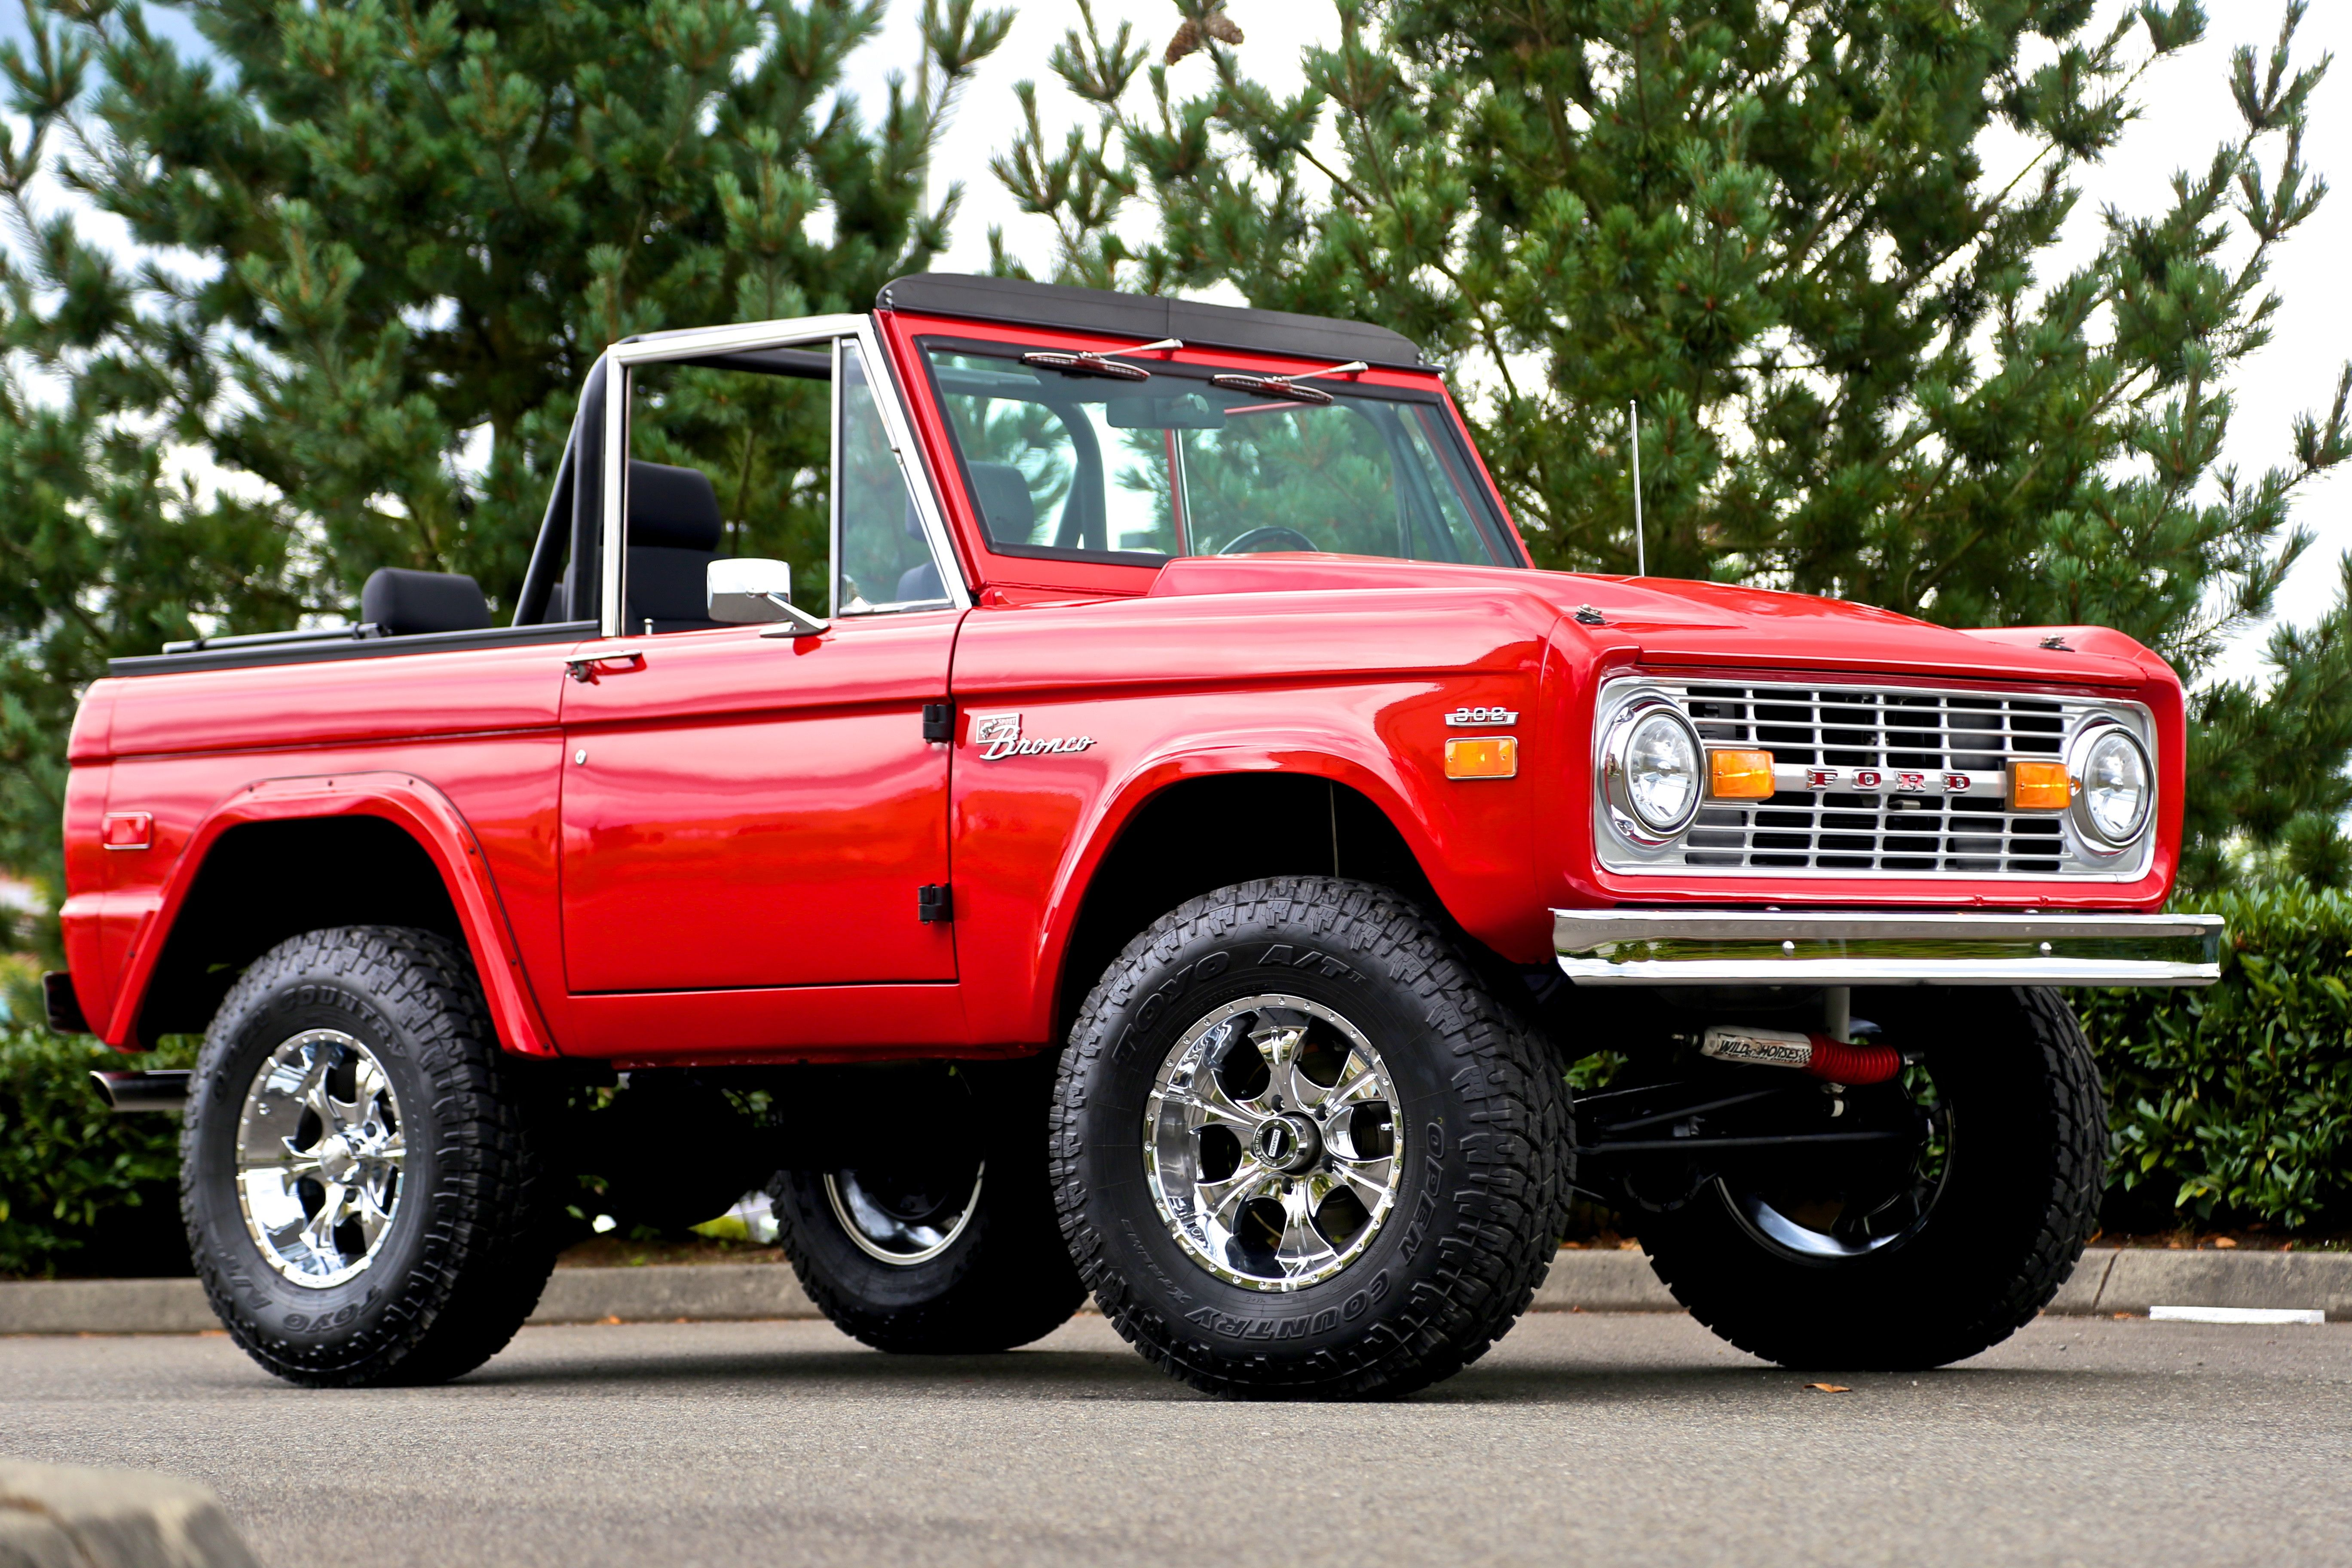 Viper red Bronco w stock bumpers Ford bronco, Bronco